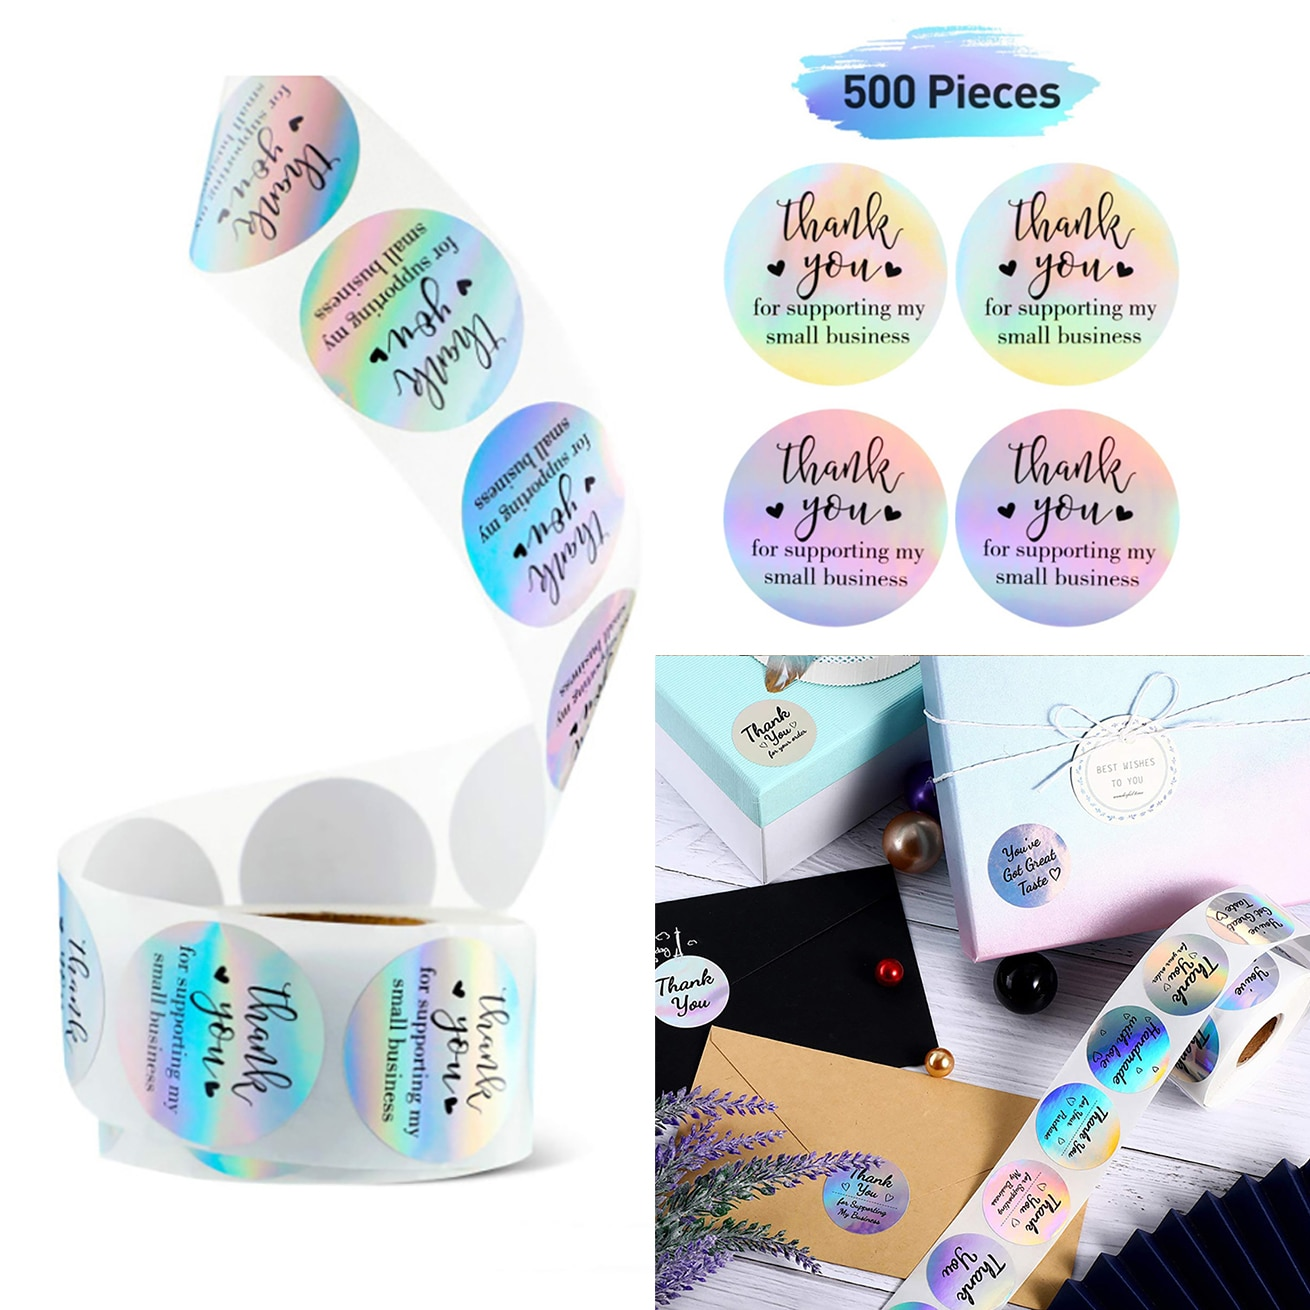 500pcs/roll 3.8cm Rainbow Laser Lover Thank You Stickers Students Gift Business Wrapping Decorative Label Stationery Sticker